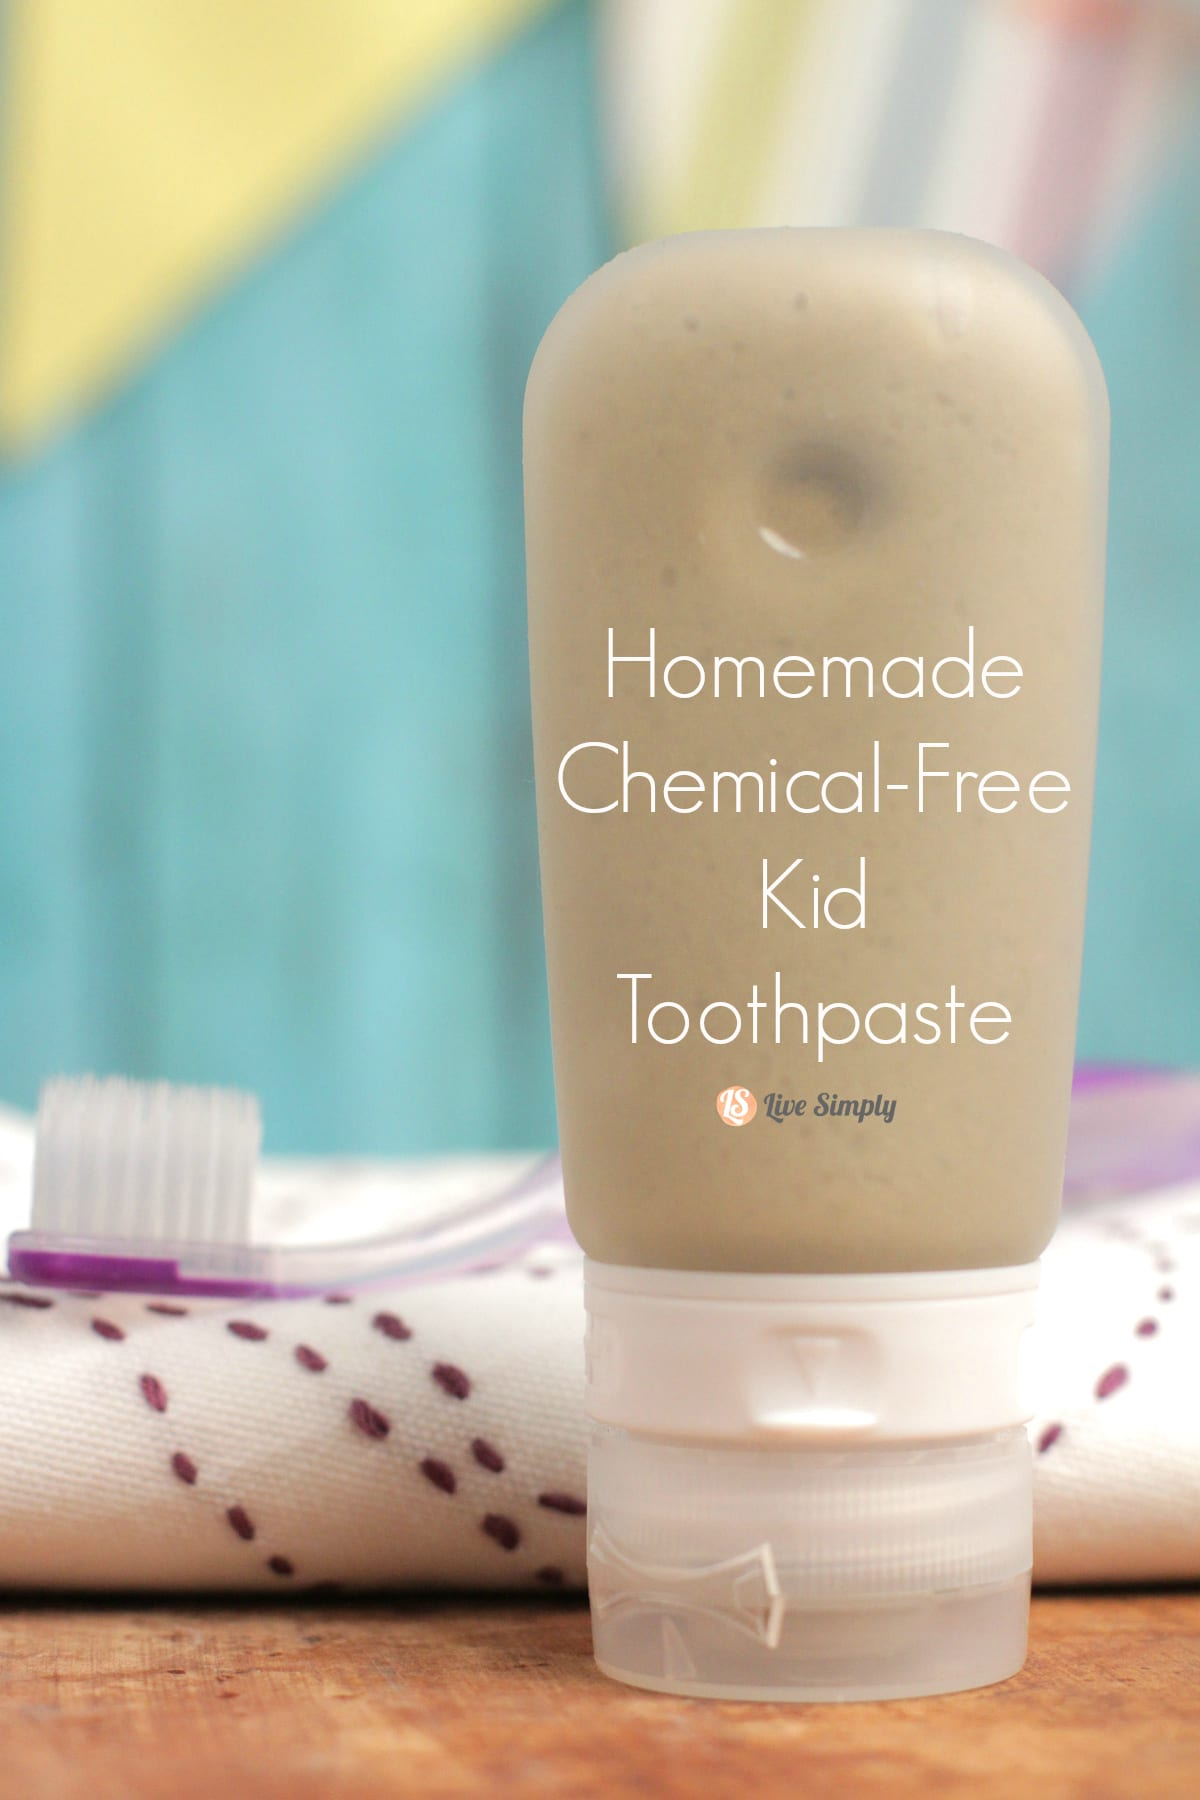 Homemade Chemical-Free Kid Toothpaste. A homemade toothpaste for kids. Homemade kid toothpaste